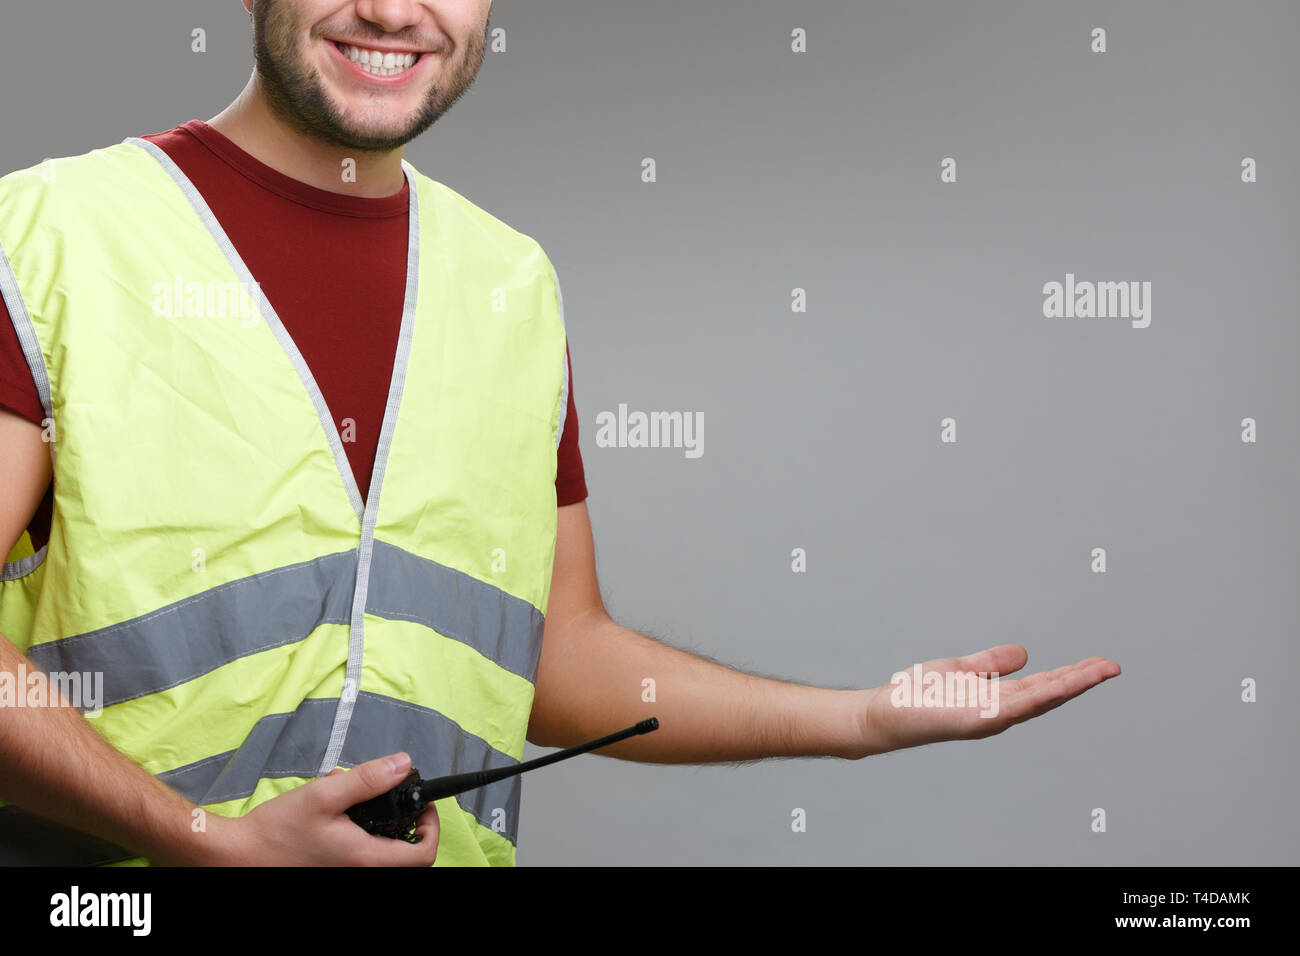 Photo of smiling builder in yellow vest with raised palm up - Stock Image